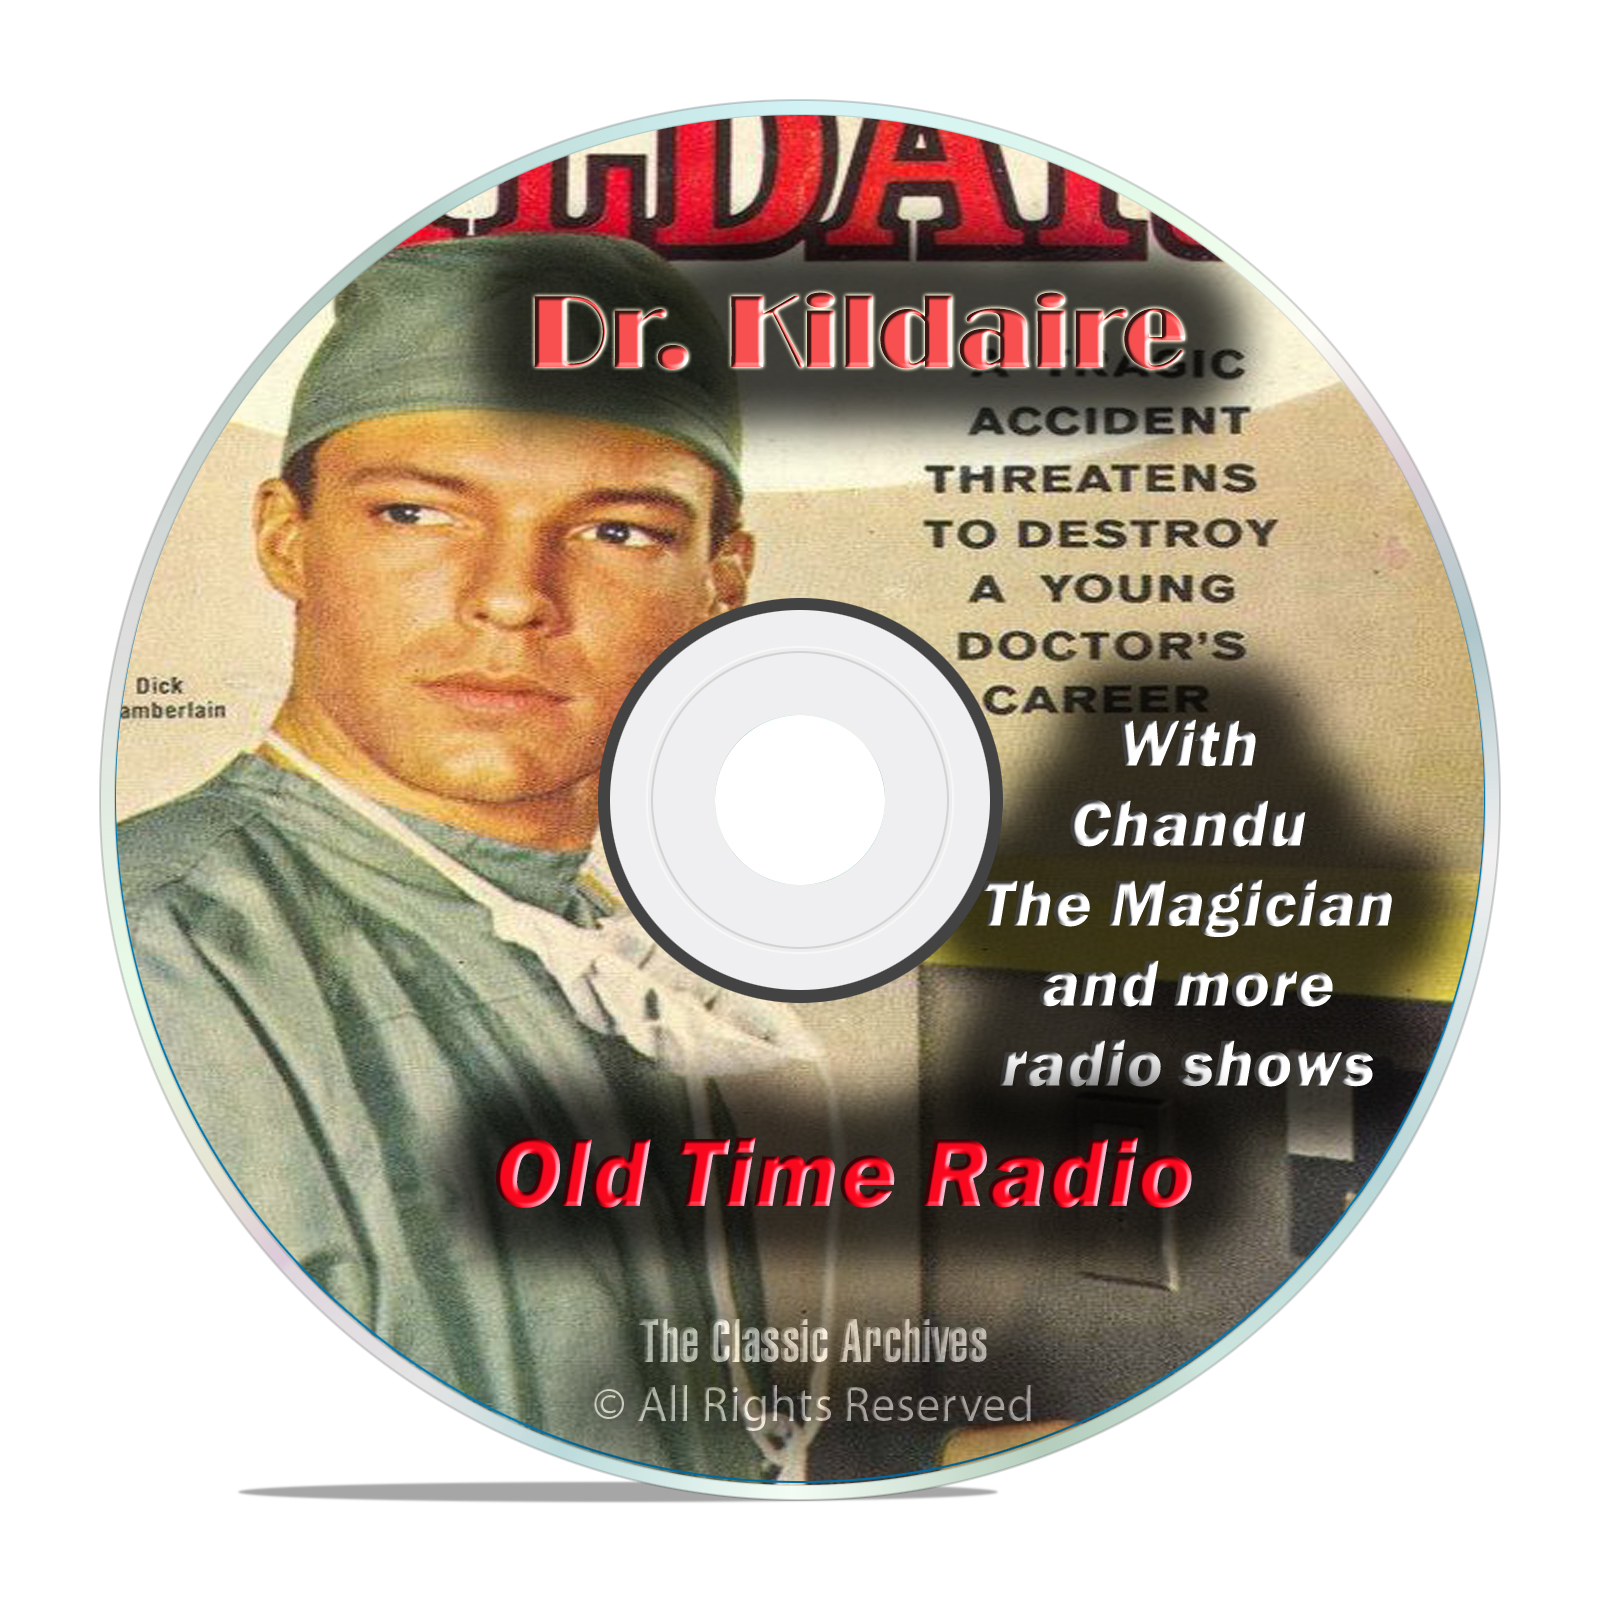 Dr. Kildaire, 1,023 Classic Old Time Radio Medical Drama Shows, OTR mp3 DVD